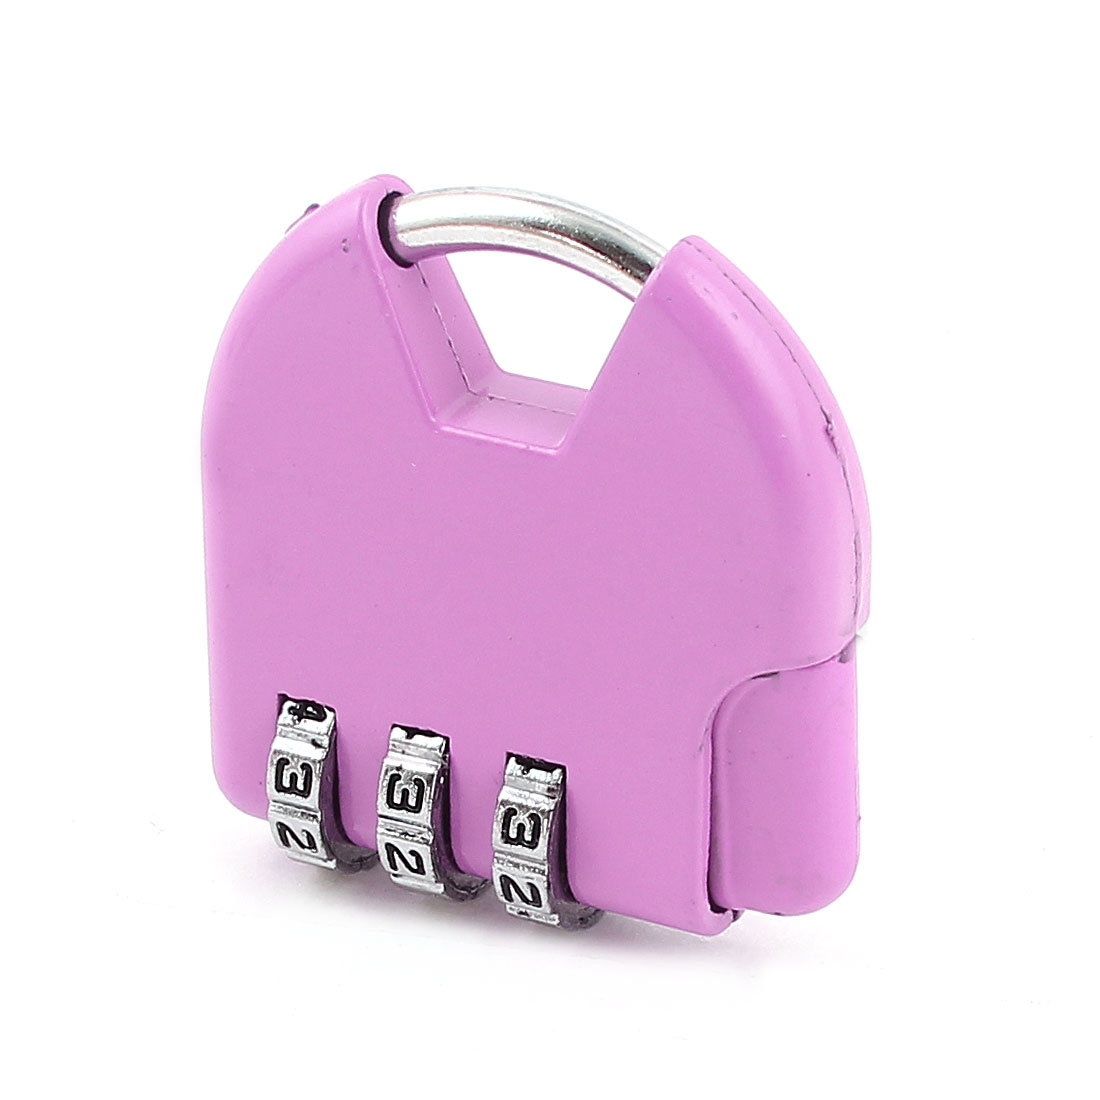 Travel Suitcase Resettable 3 Digits Combination Password Safety Padlock Pink